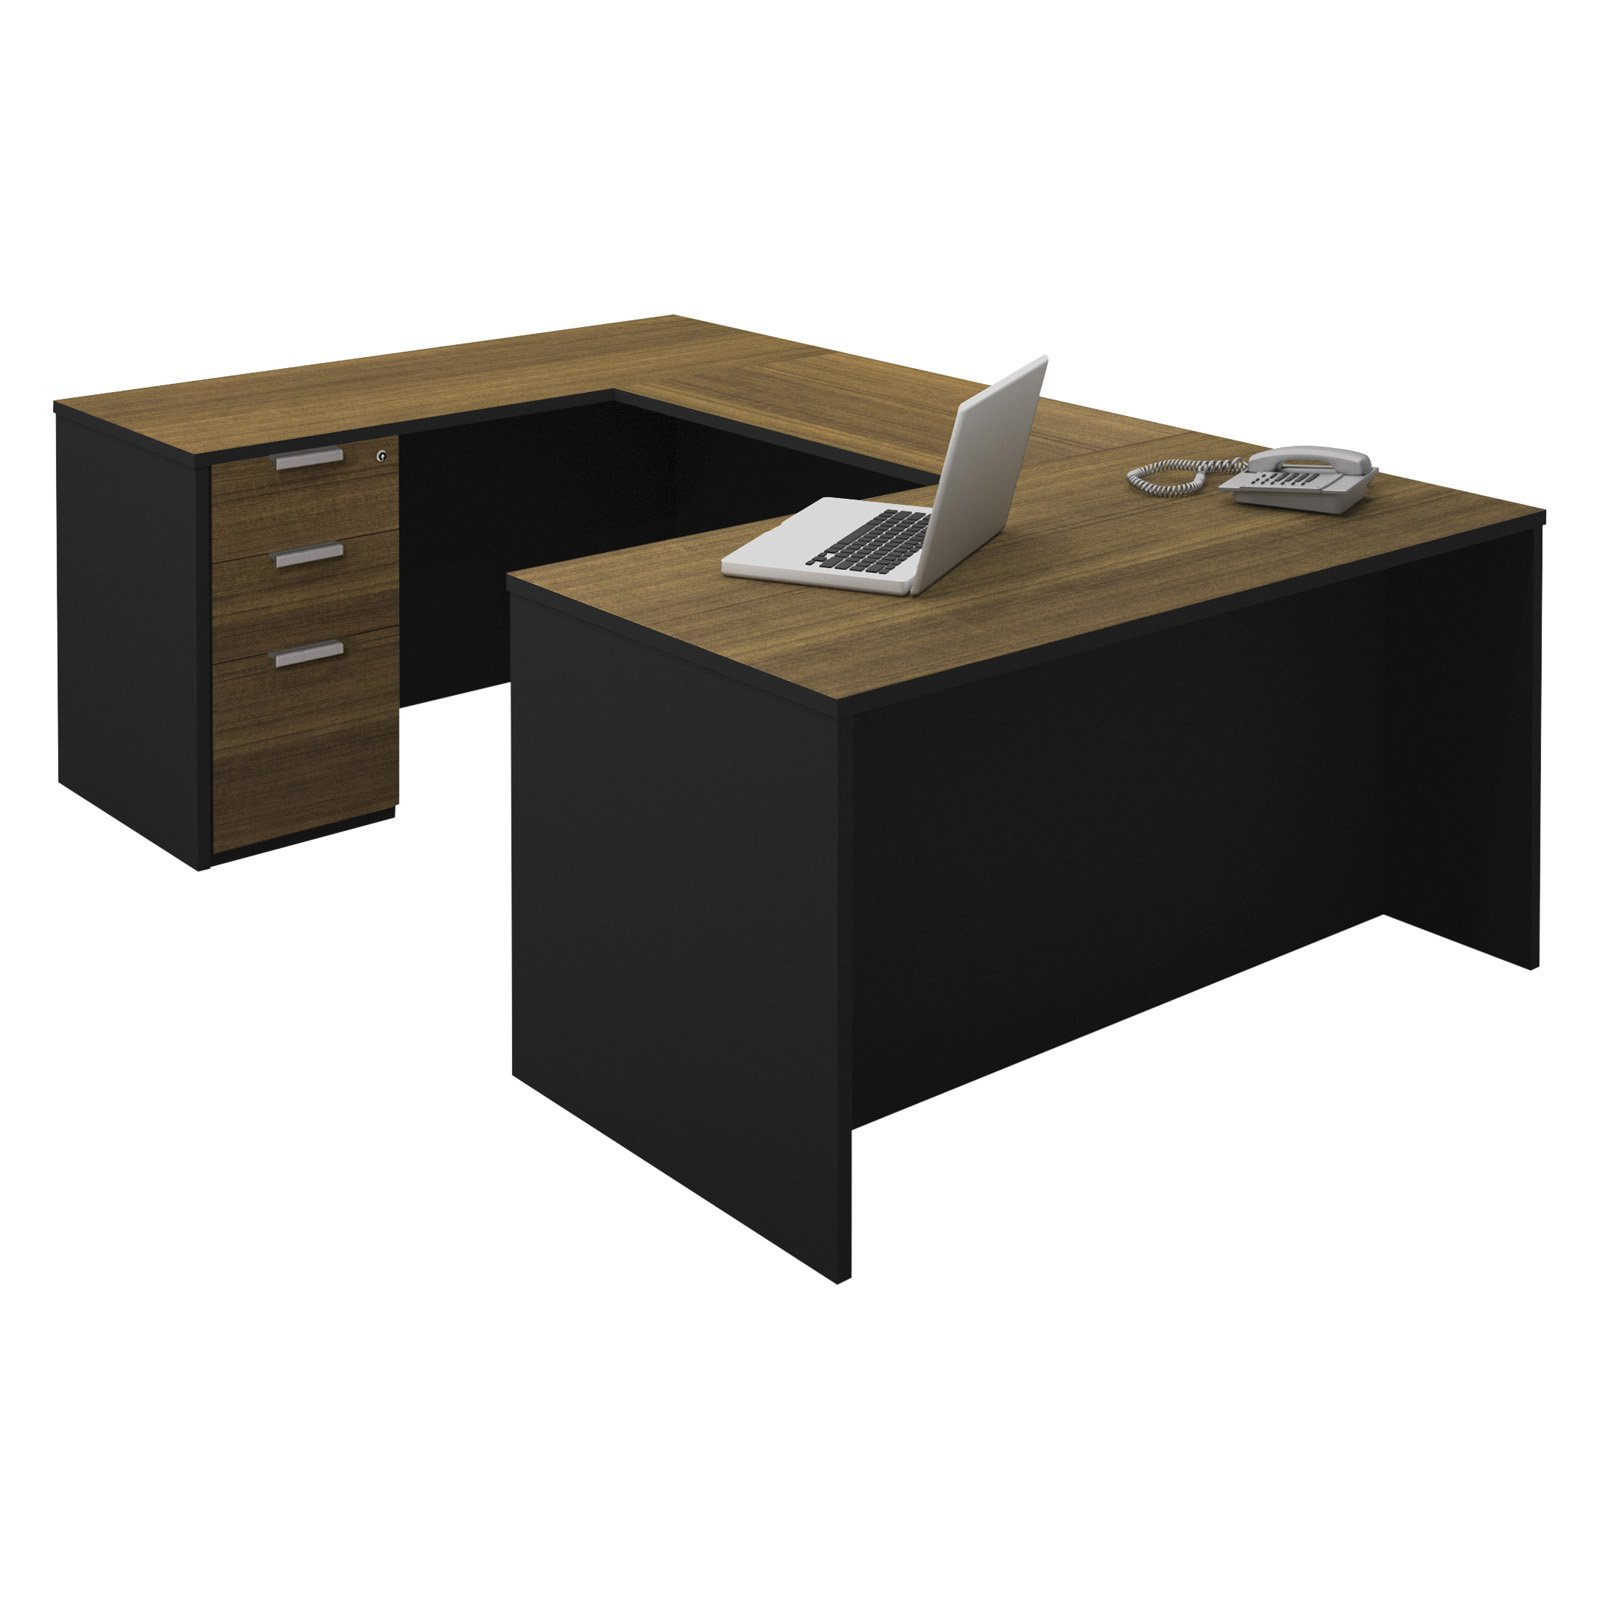 Bestar Pro-Concept U-Shaped Workstation with One Assembled Pedestal - Milk Chocolate Bamboo and Black